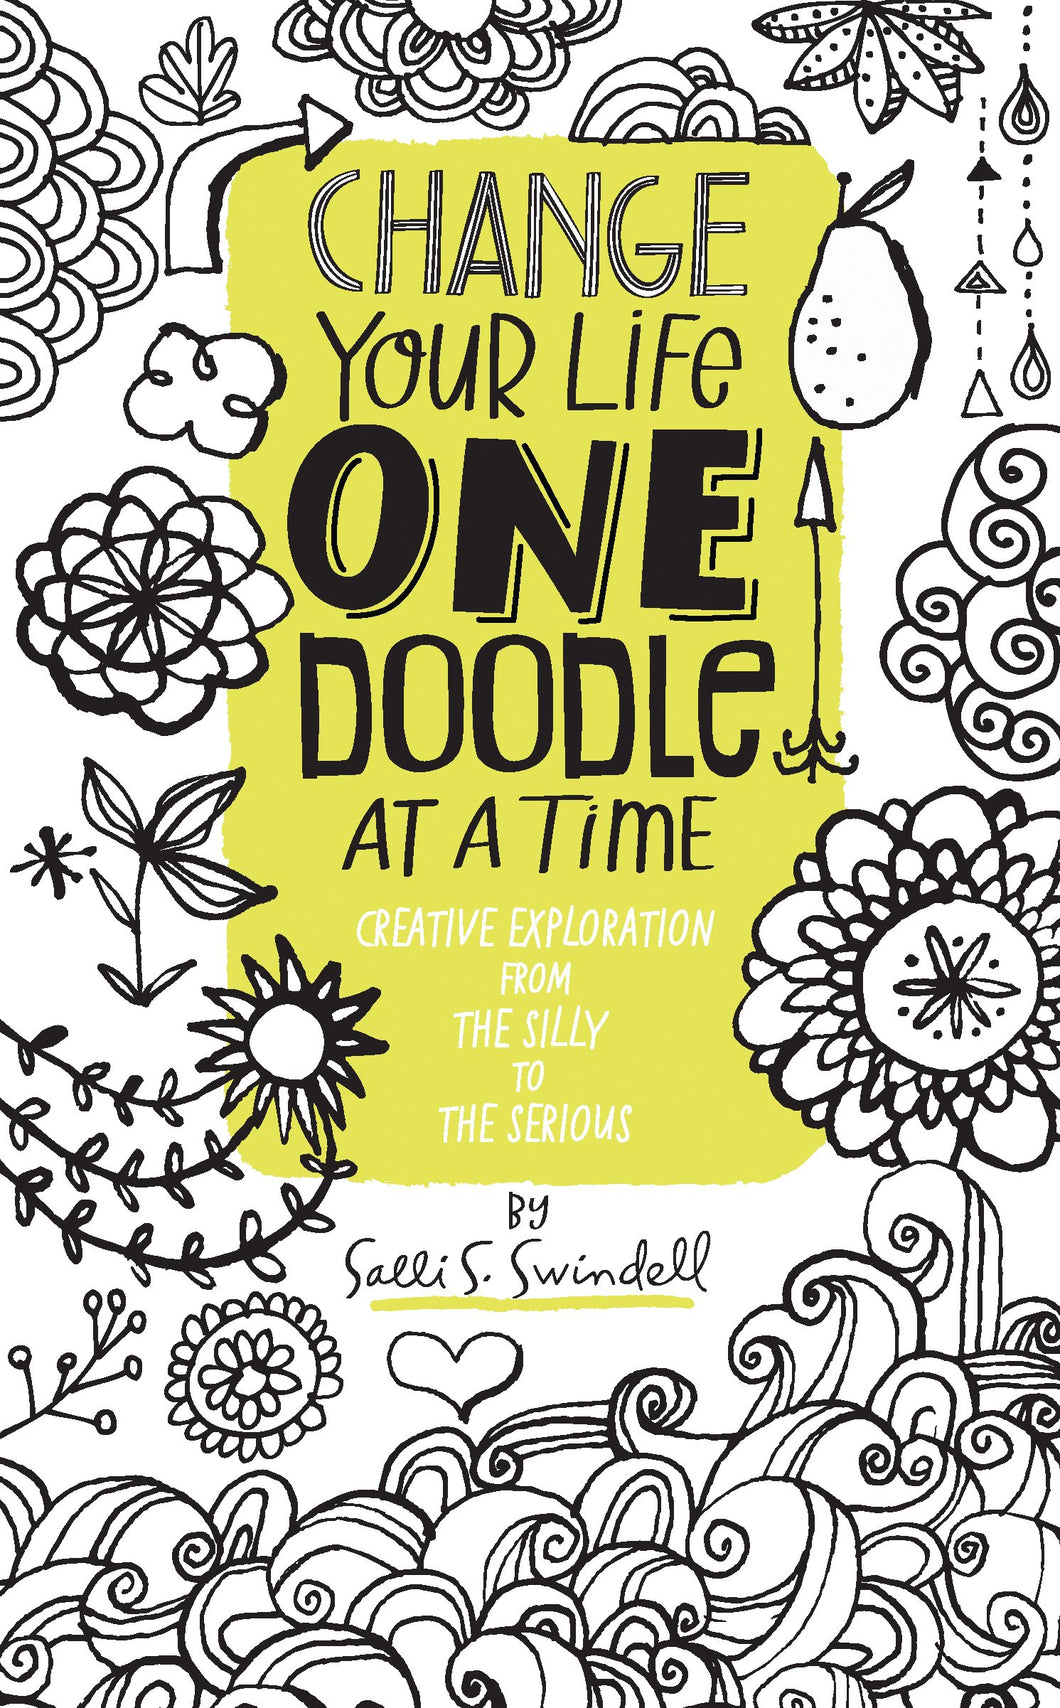 Change Your Life One Doodle at a Time